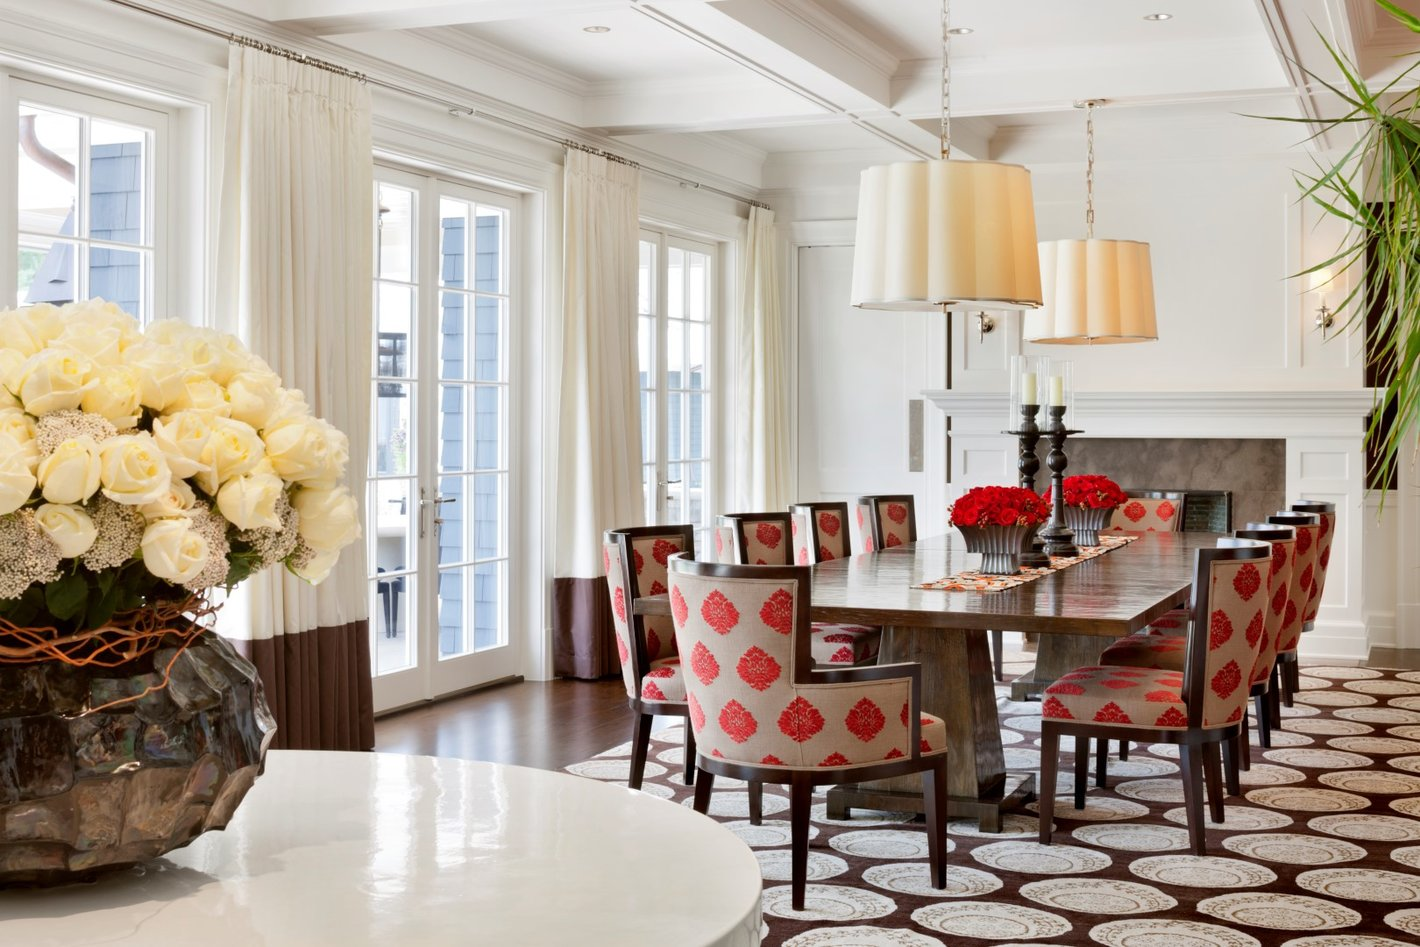 Colorado Luxe Dining Bar - Luxury Residential by Philpotts Interiors